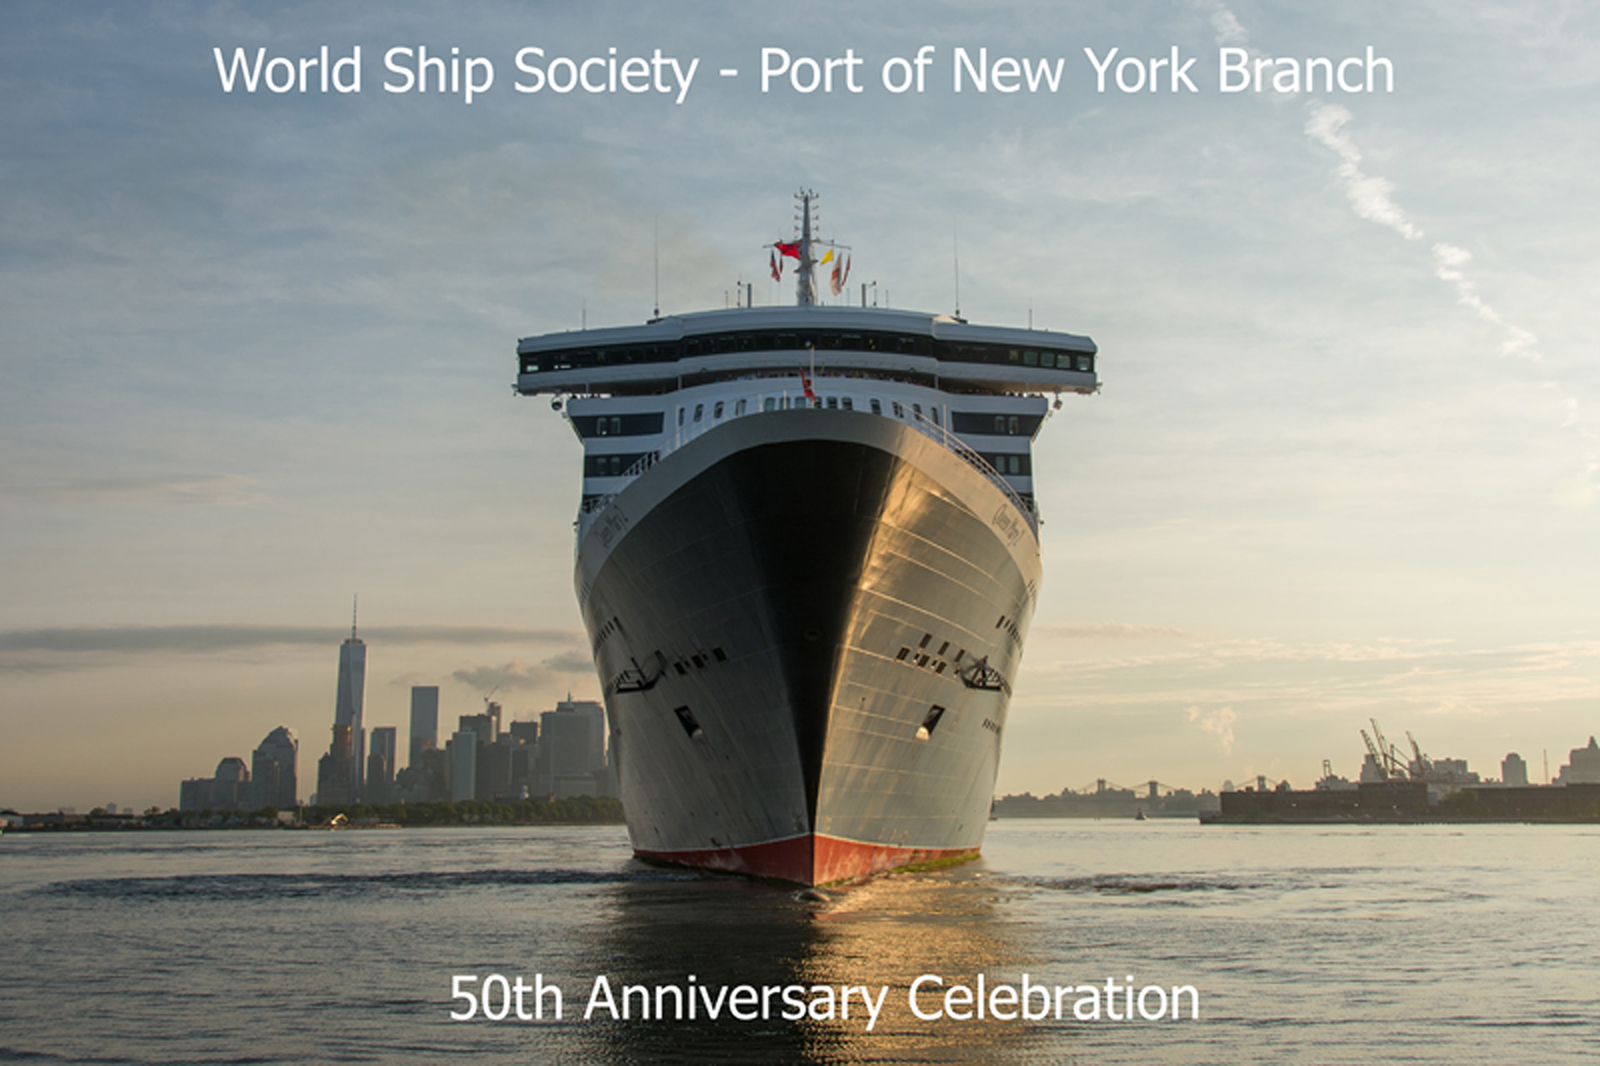 World Ship Society Port of New York